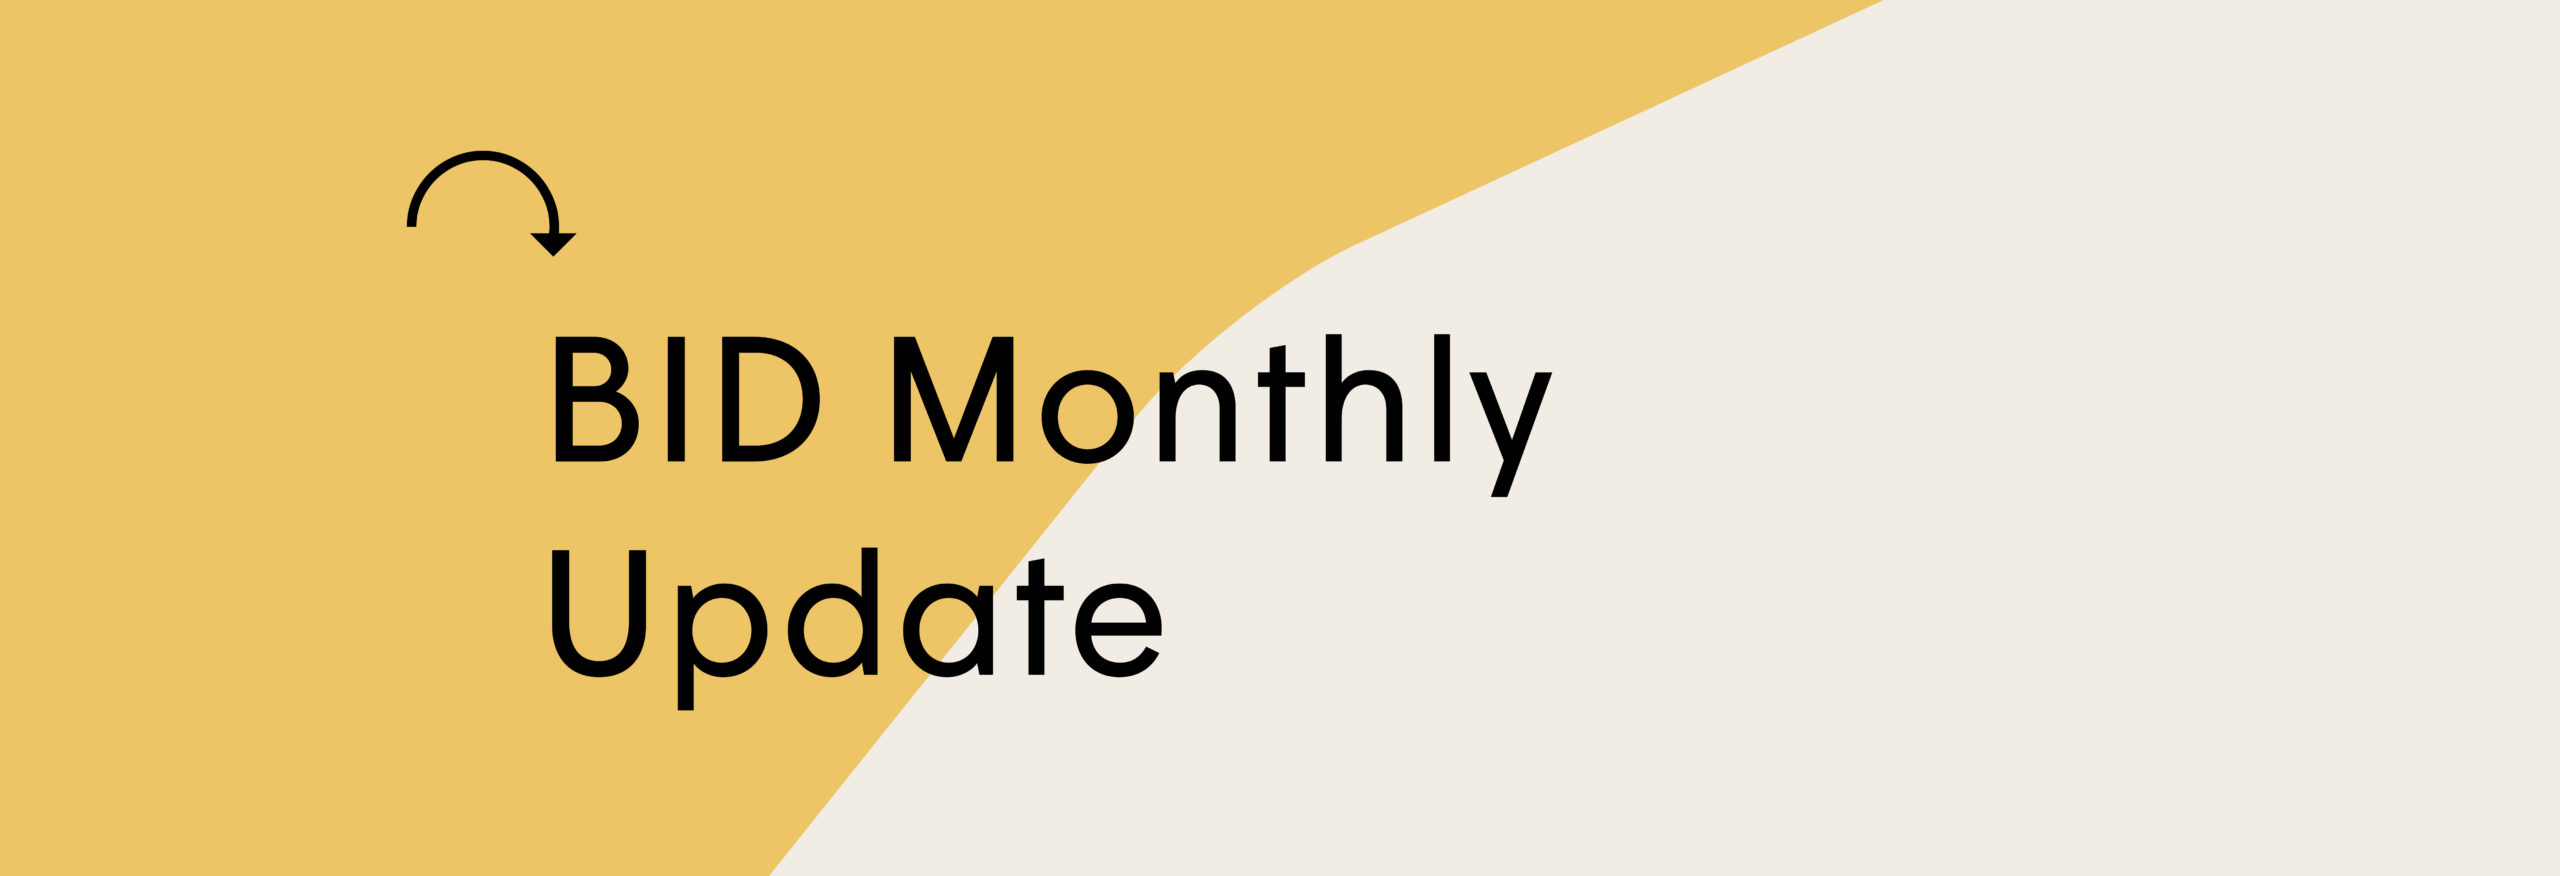 BID Monthly Update